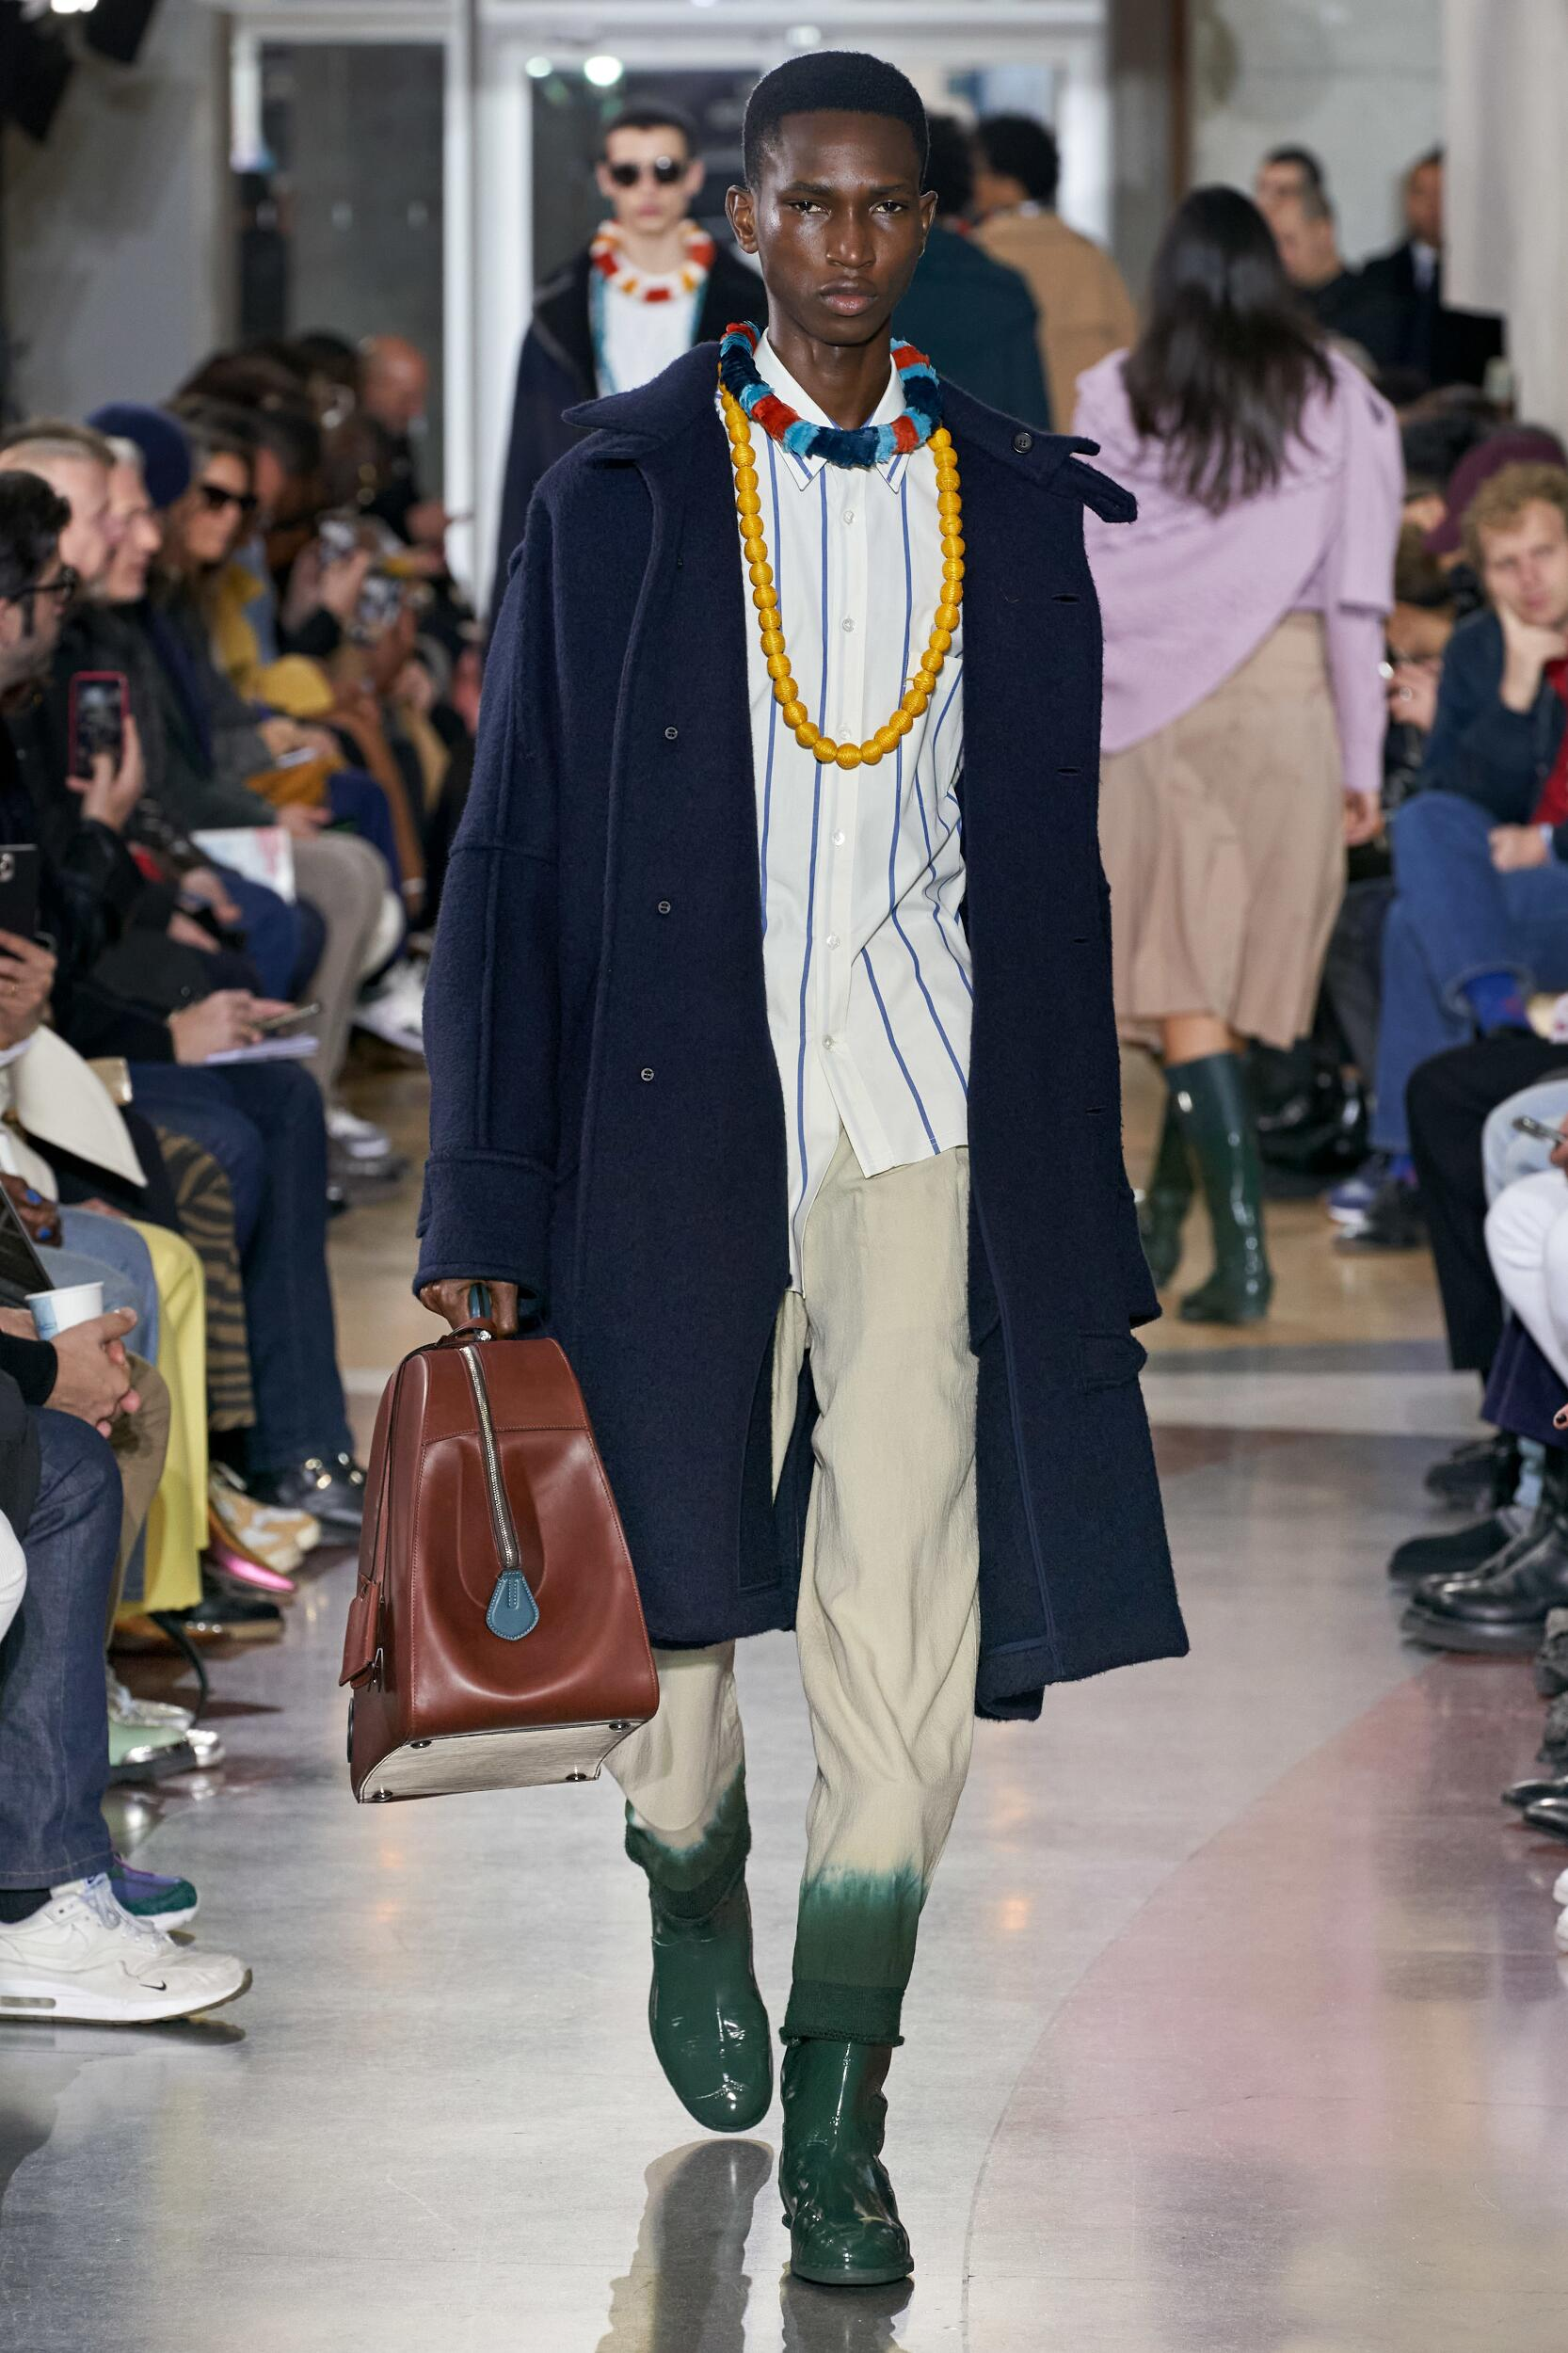 Lanvin Fall Winter 2020 Mens Collection Paris Fashion Week